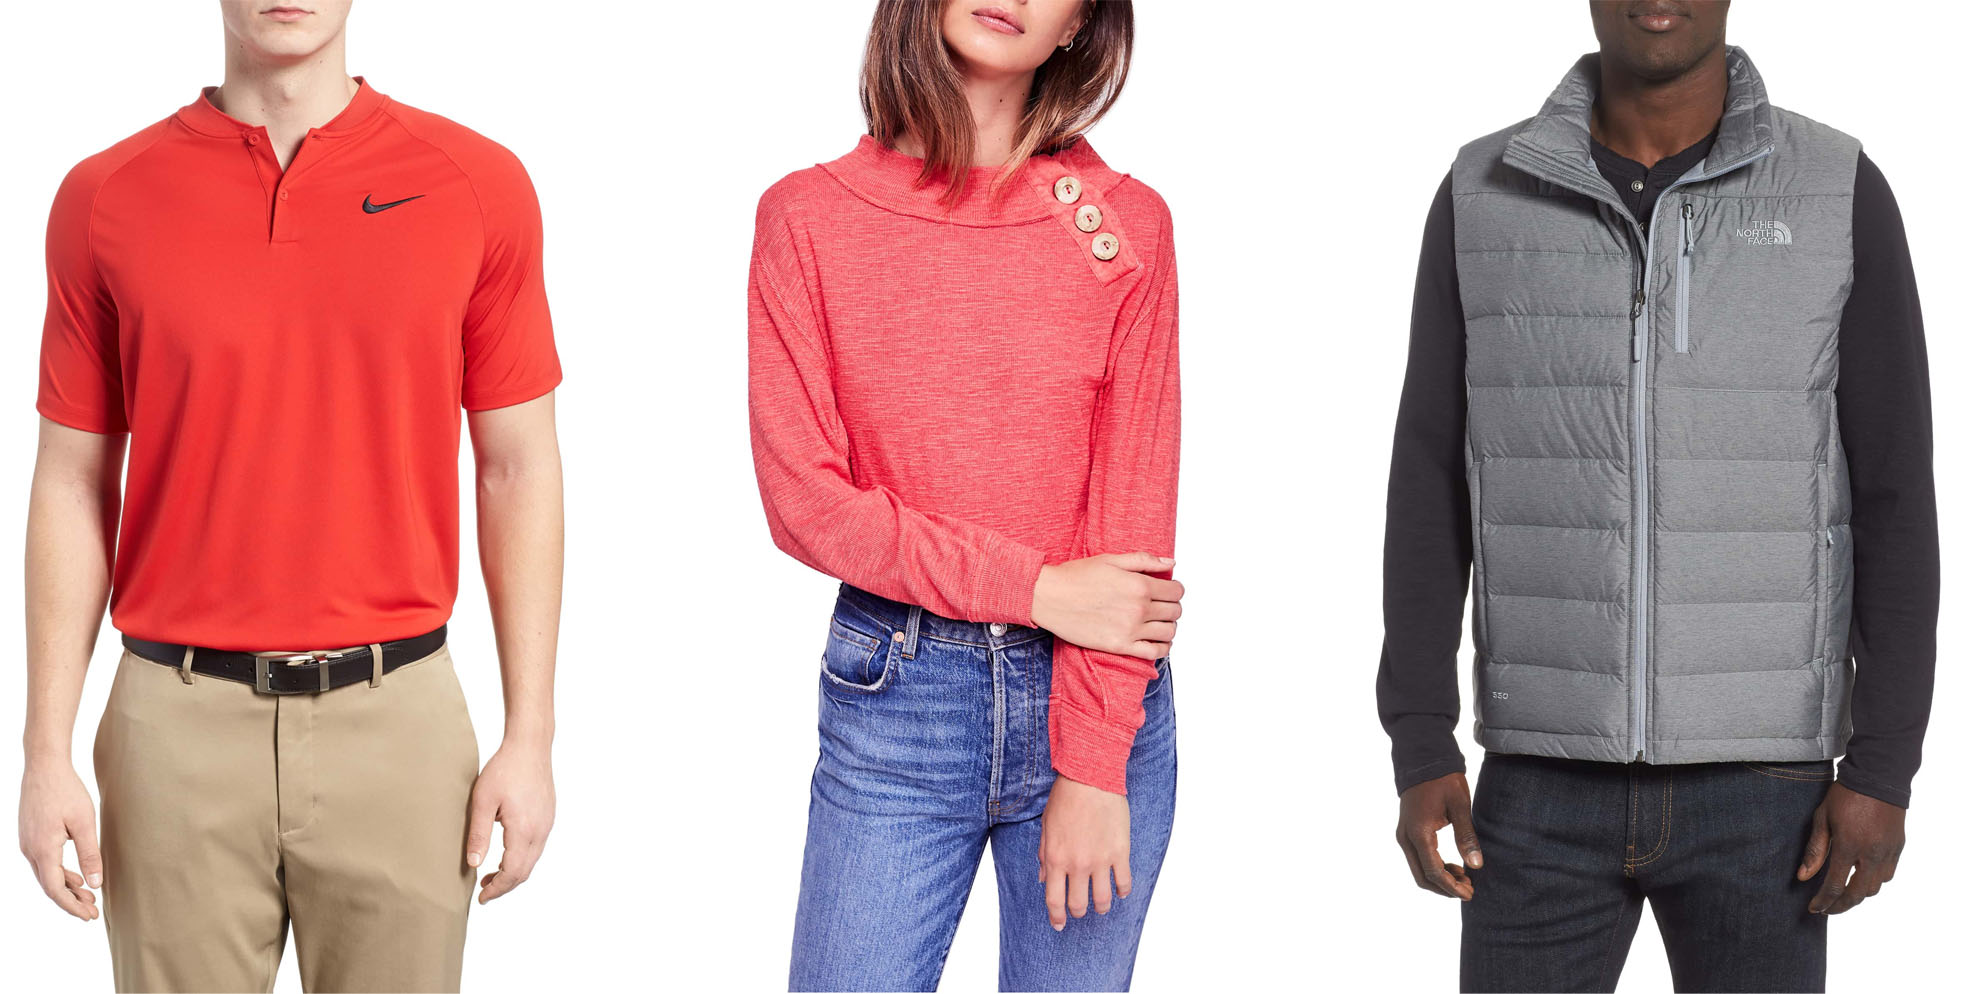 Nordstrom Winter Sale takes up to 40% off The North Face, Nike, Under Armour, more